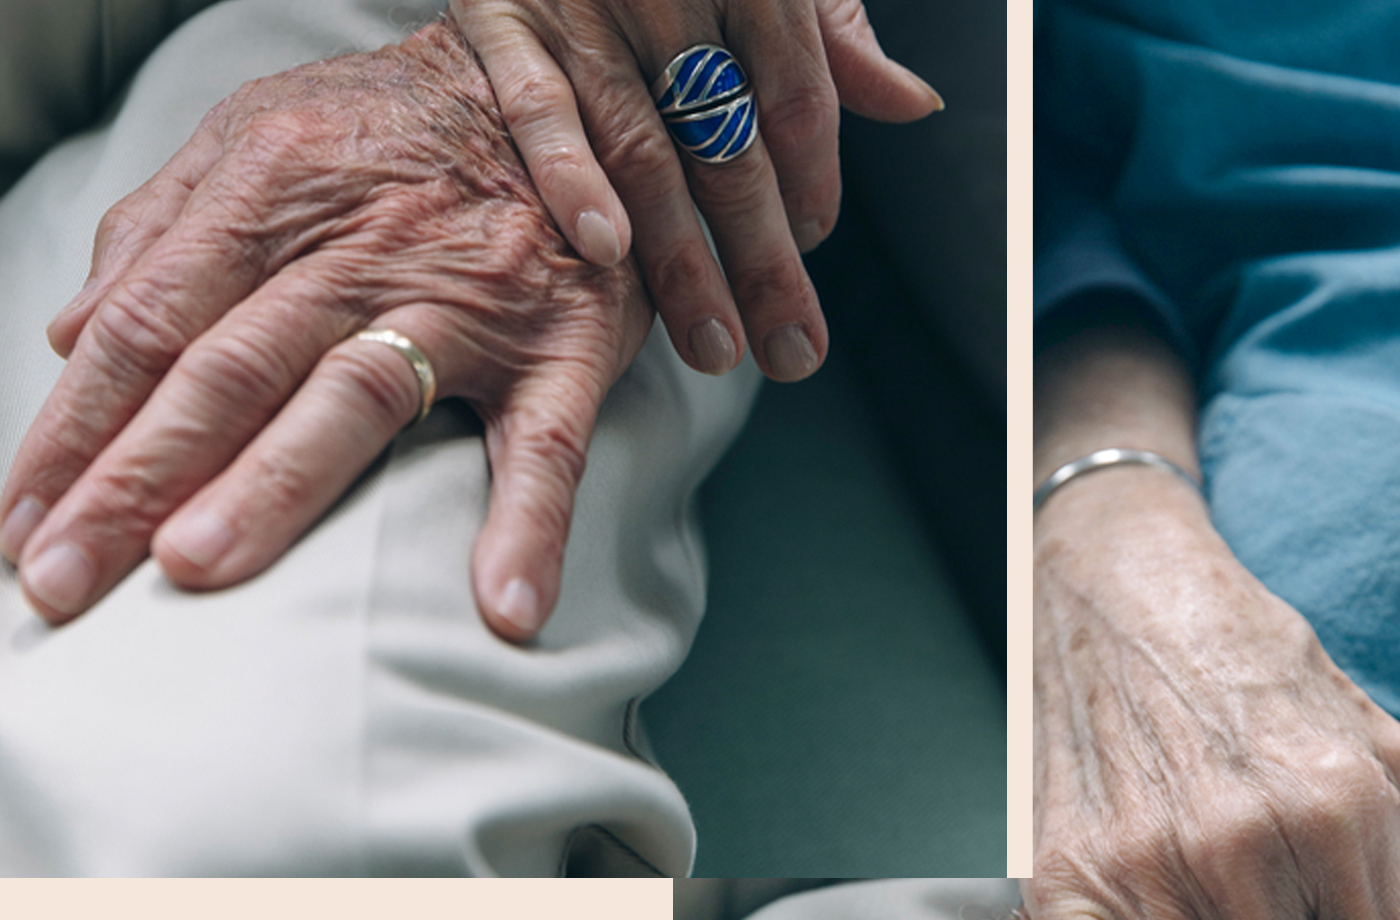 Thumbnail for 6 Tips for Keeping Love Alive From the World's Oldest Married Couple